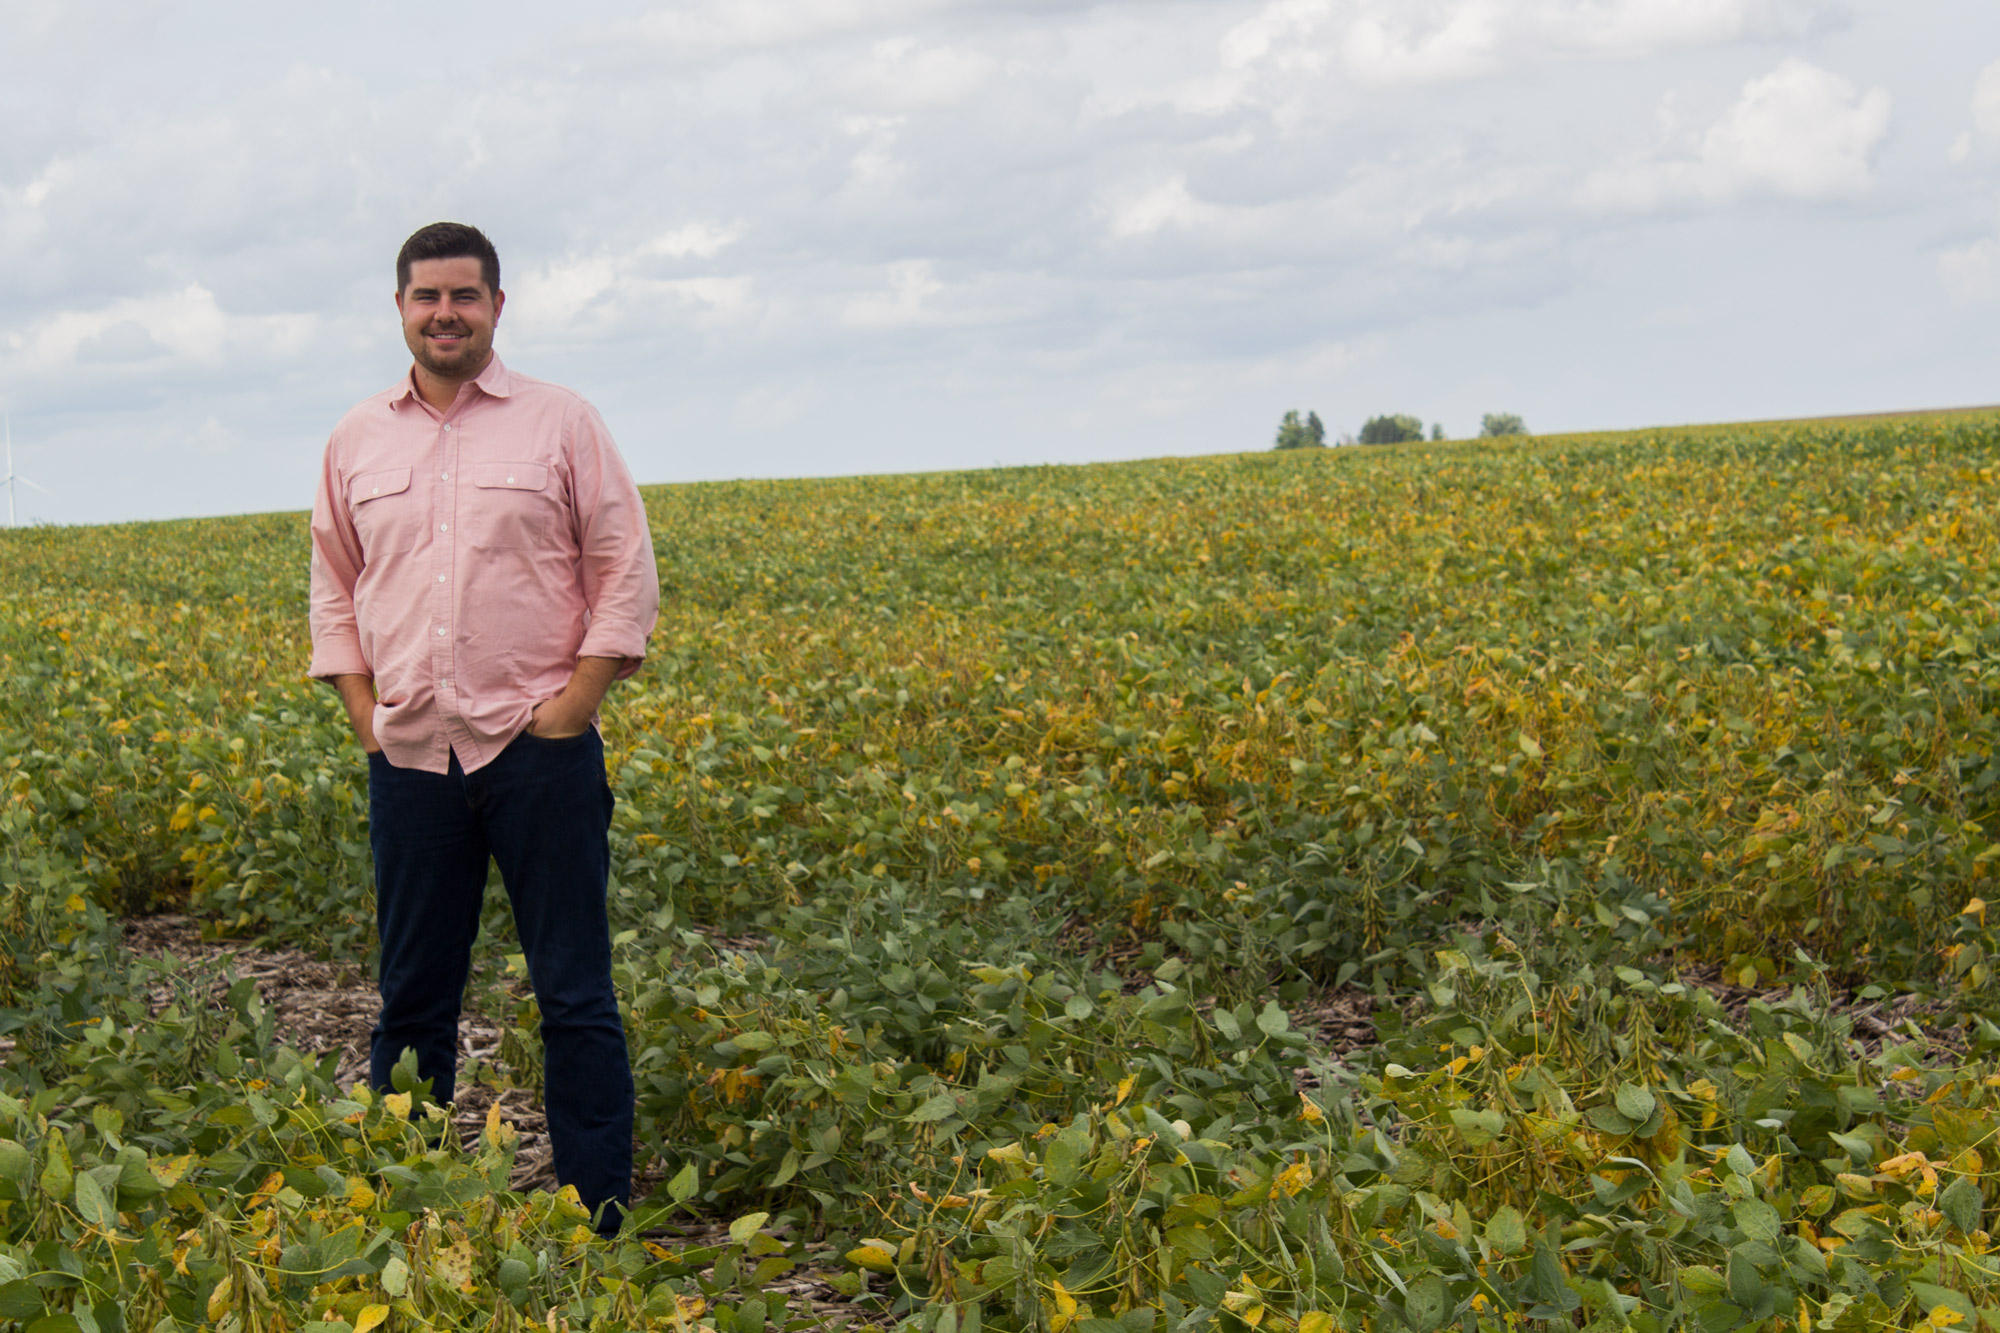 Study Cover Crops Reap Financial Benefits Not Just Environmental